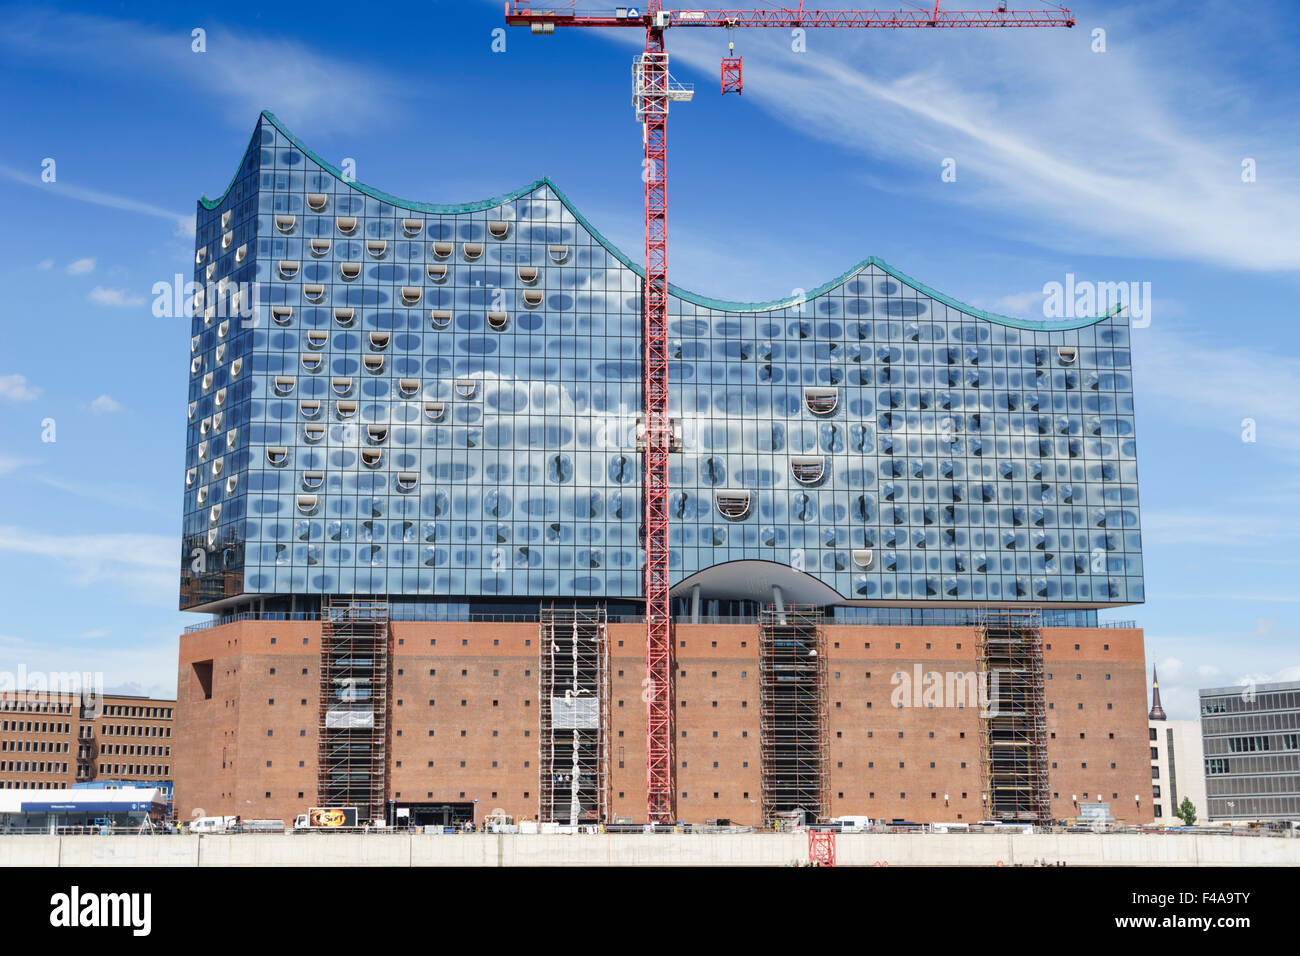 Stock photo hamburg germany riverside new - Hamburg Germany Riverside New Opera House Under Construction In Mid 2015